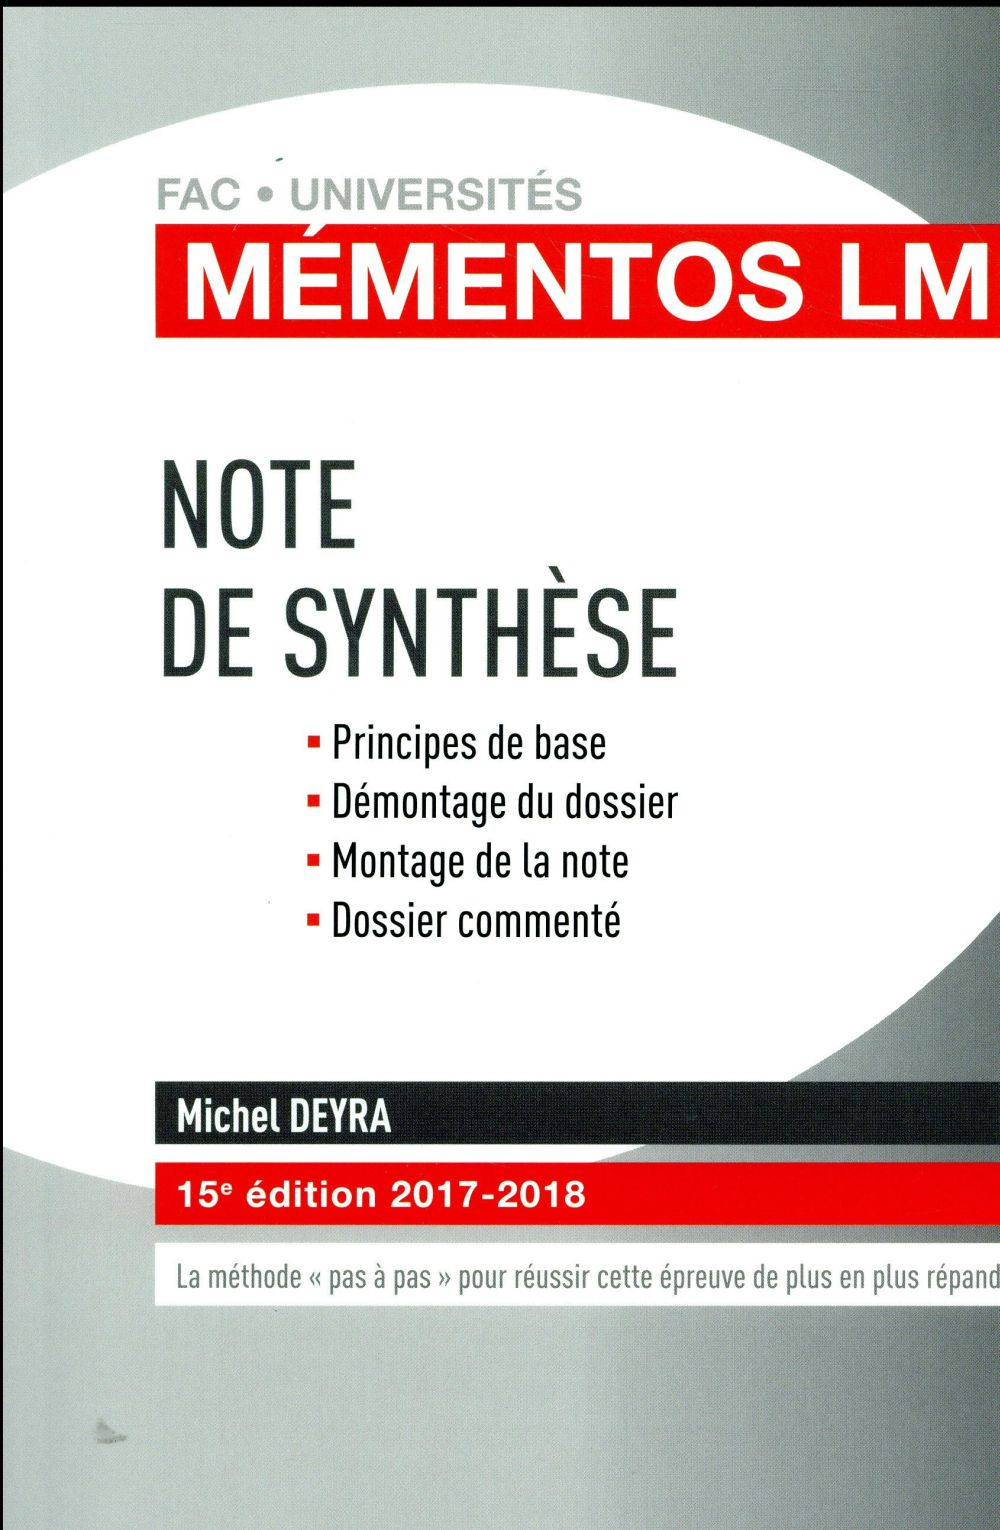 NOTE DE SYNTHESE 15EME EDITION